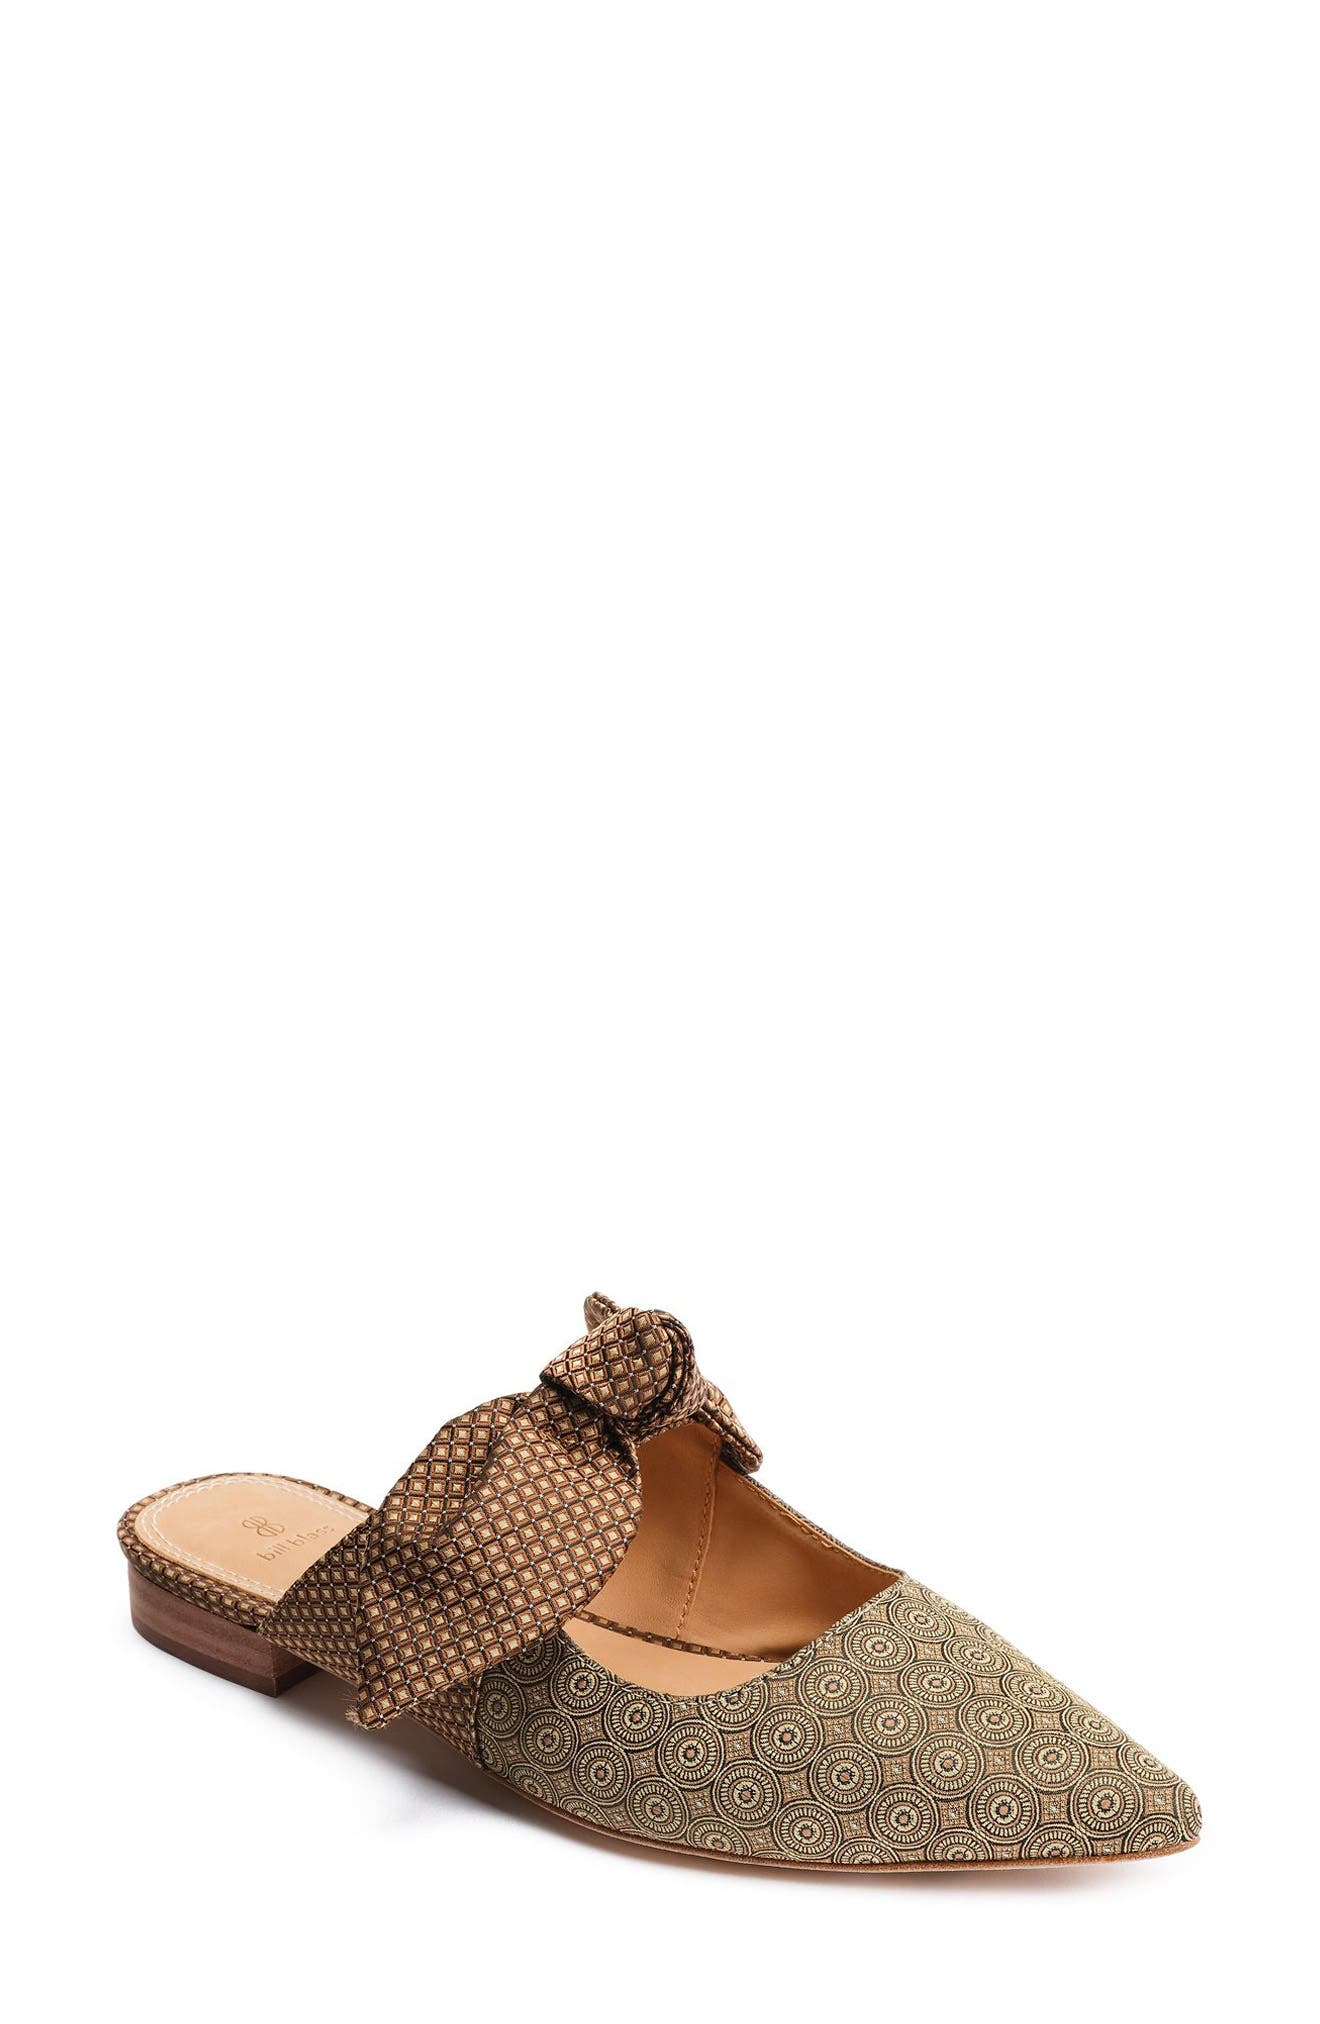 SABRINA KNOTTED MARY JANE MULE